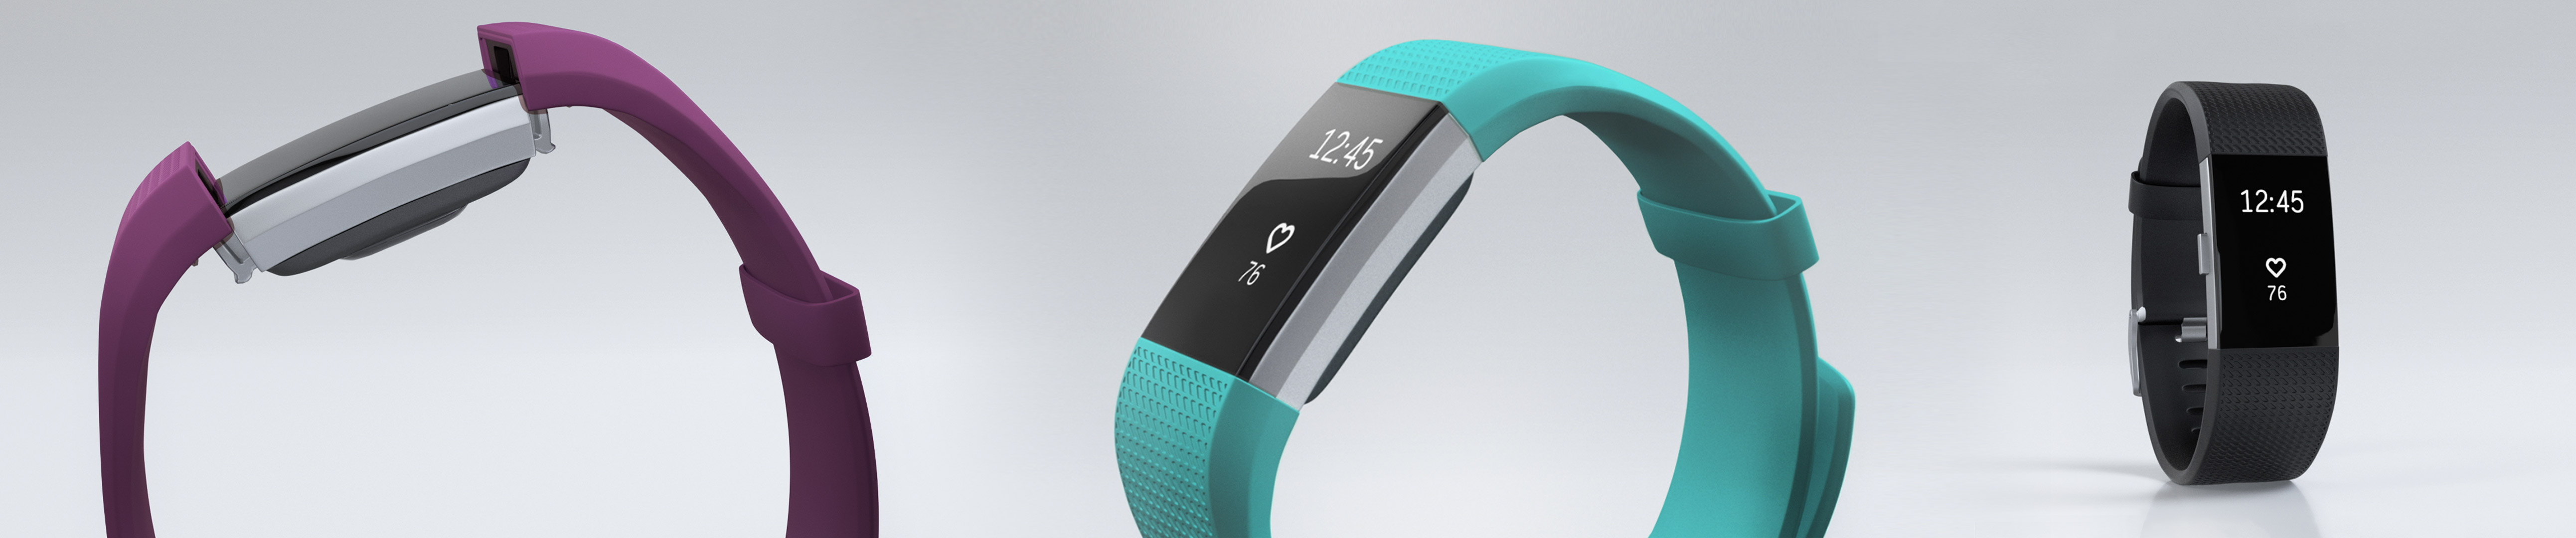 FitBit_Products